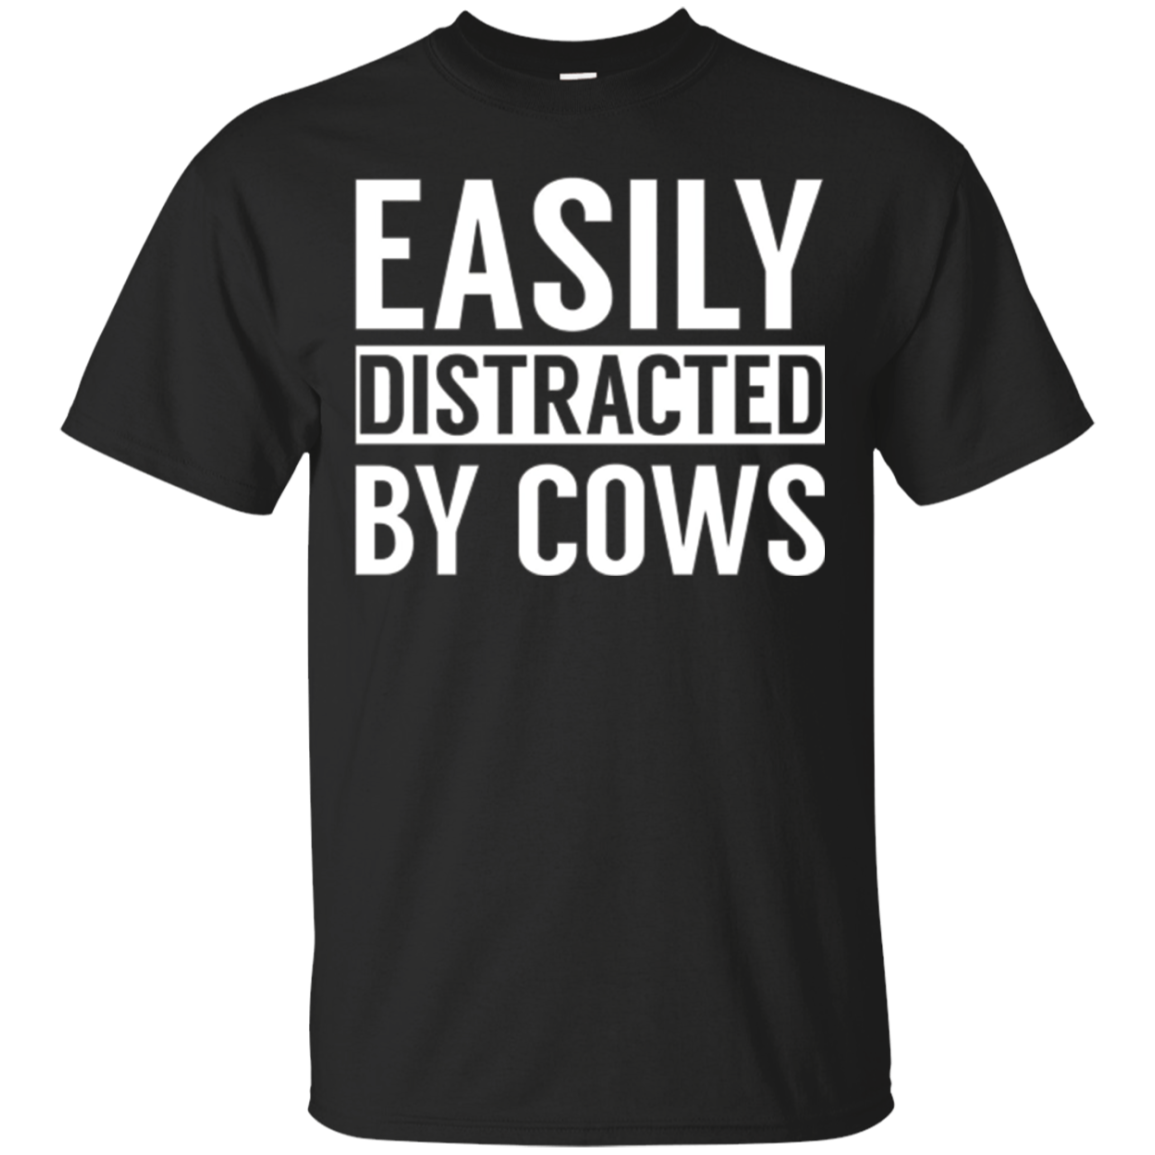 EASILY DISTRACTED BY COWS SHIRT